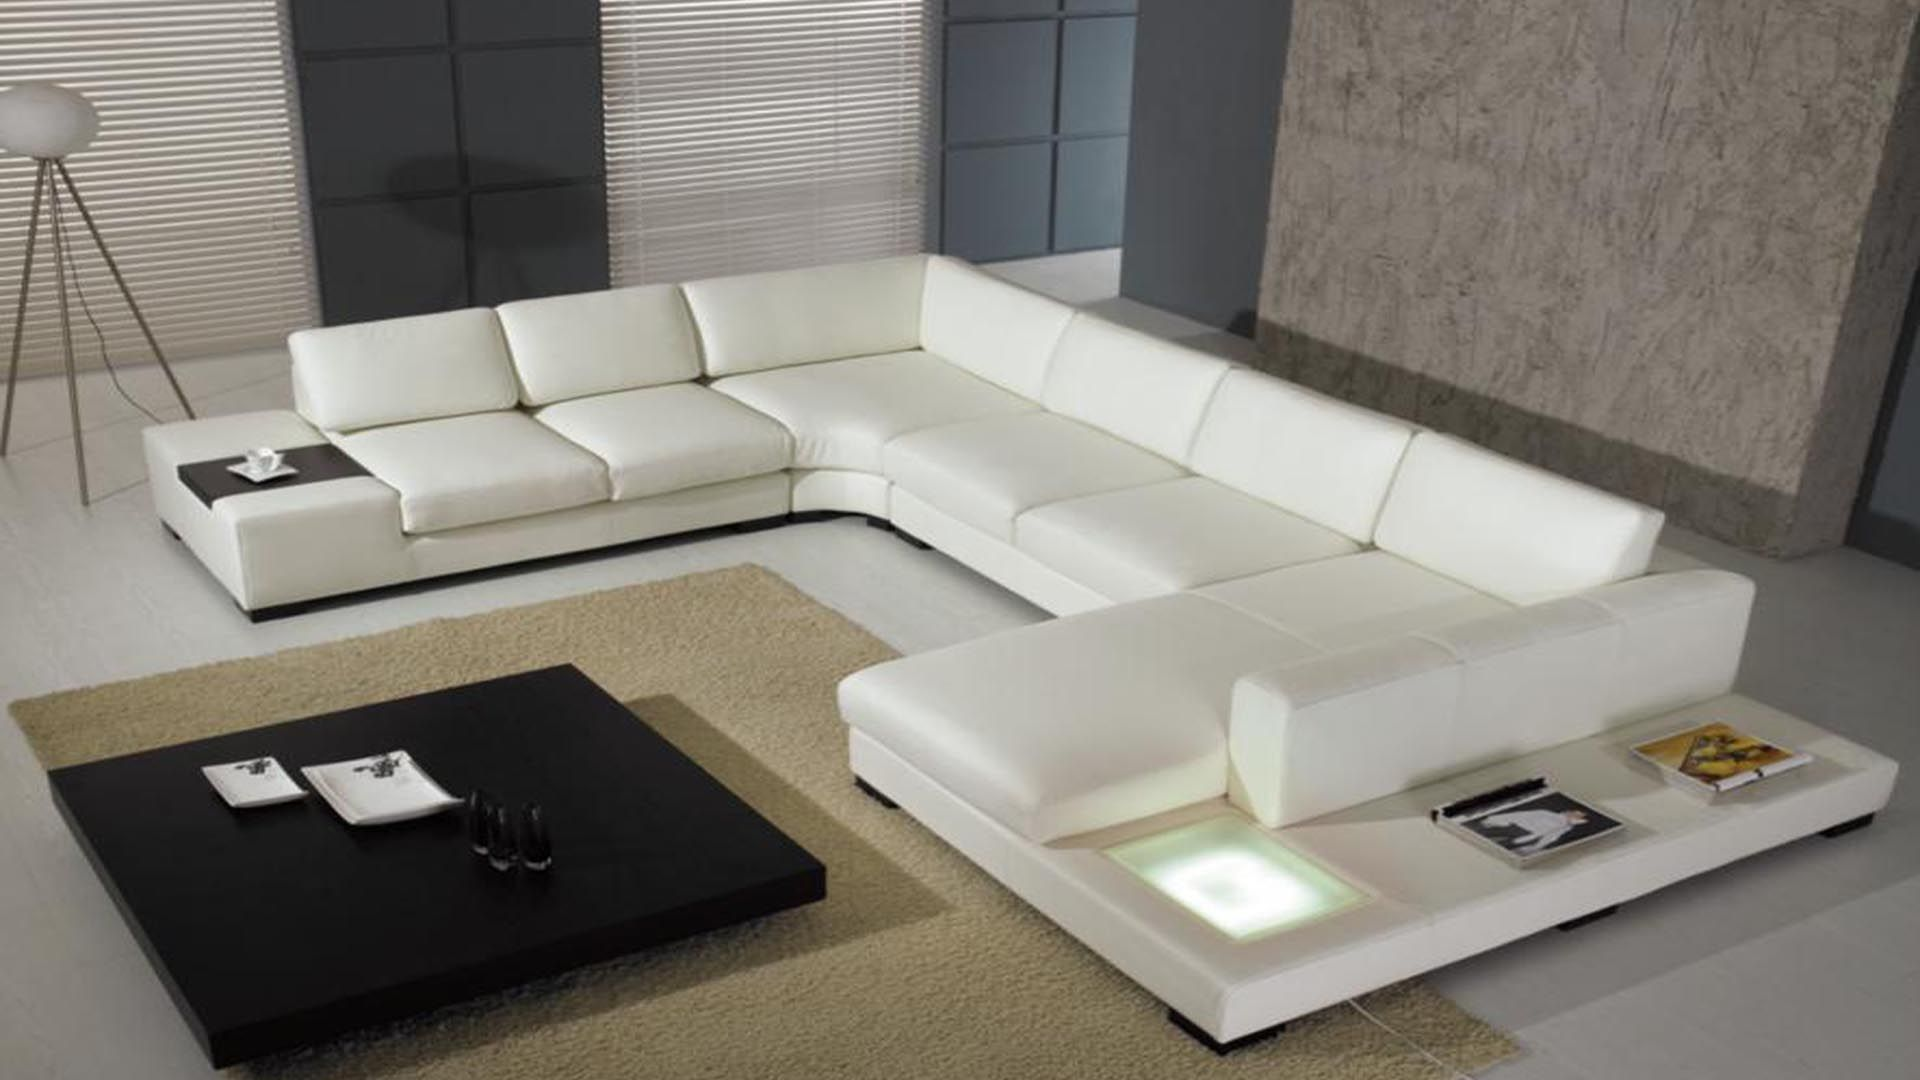 Iconic Furniture Mississauga Resemblance Of Sectional Sofa Sleepers For Better Sleep